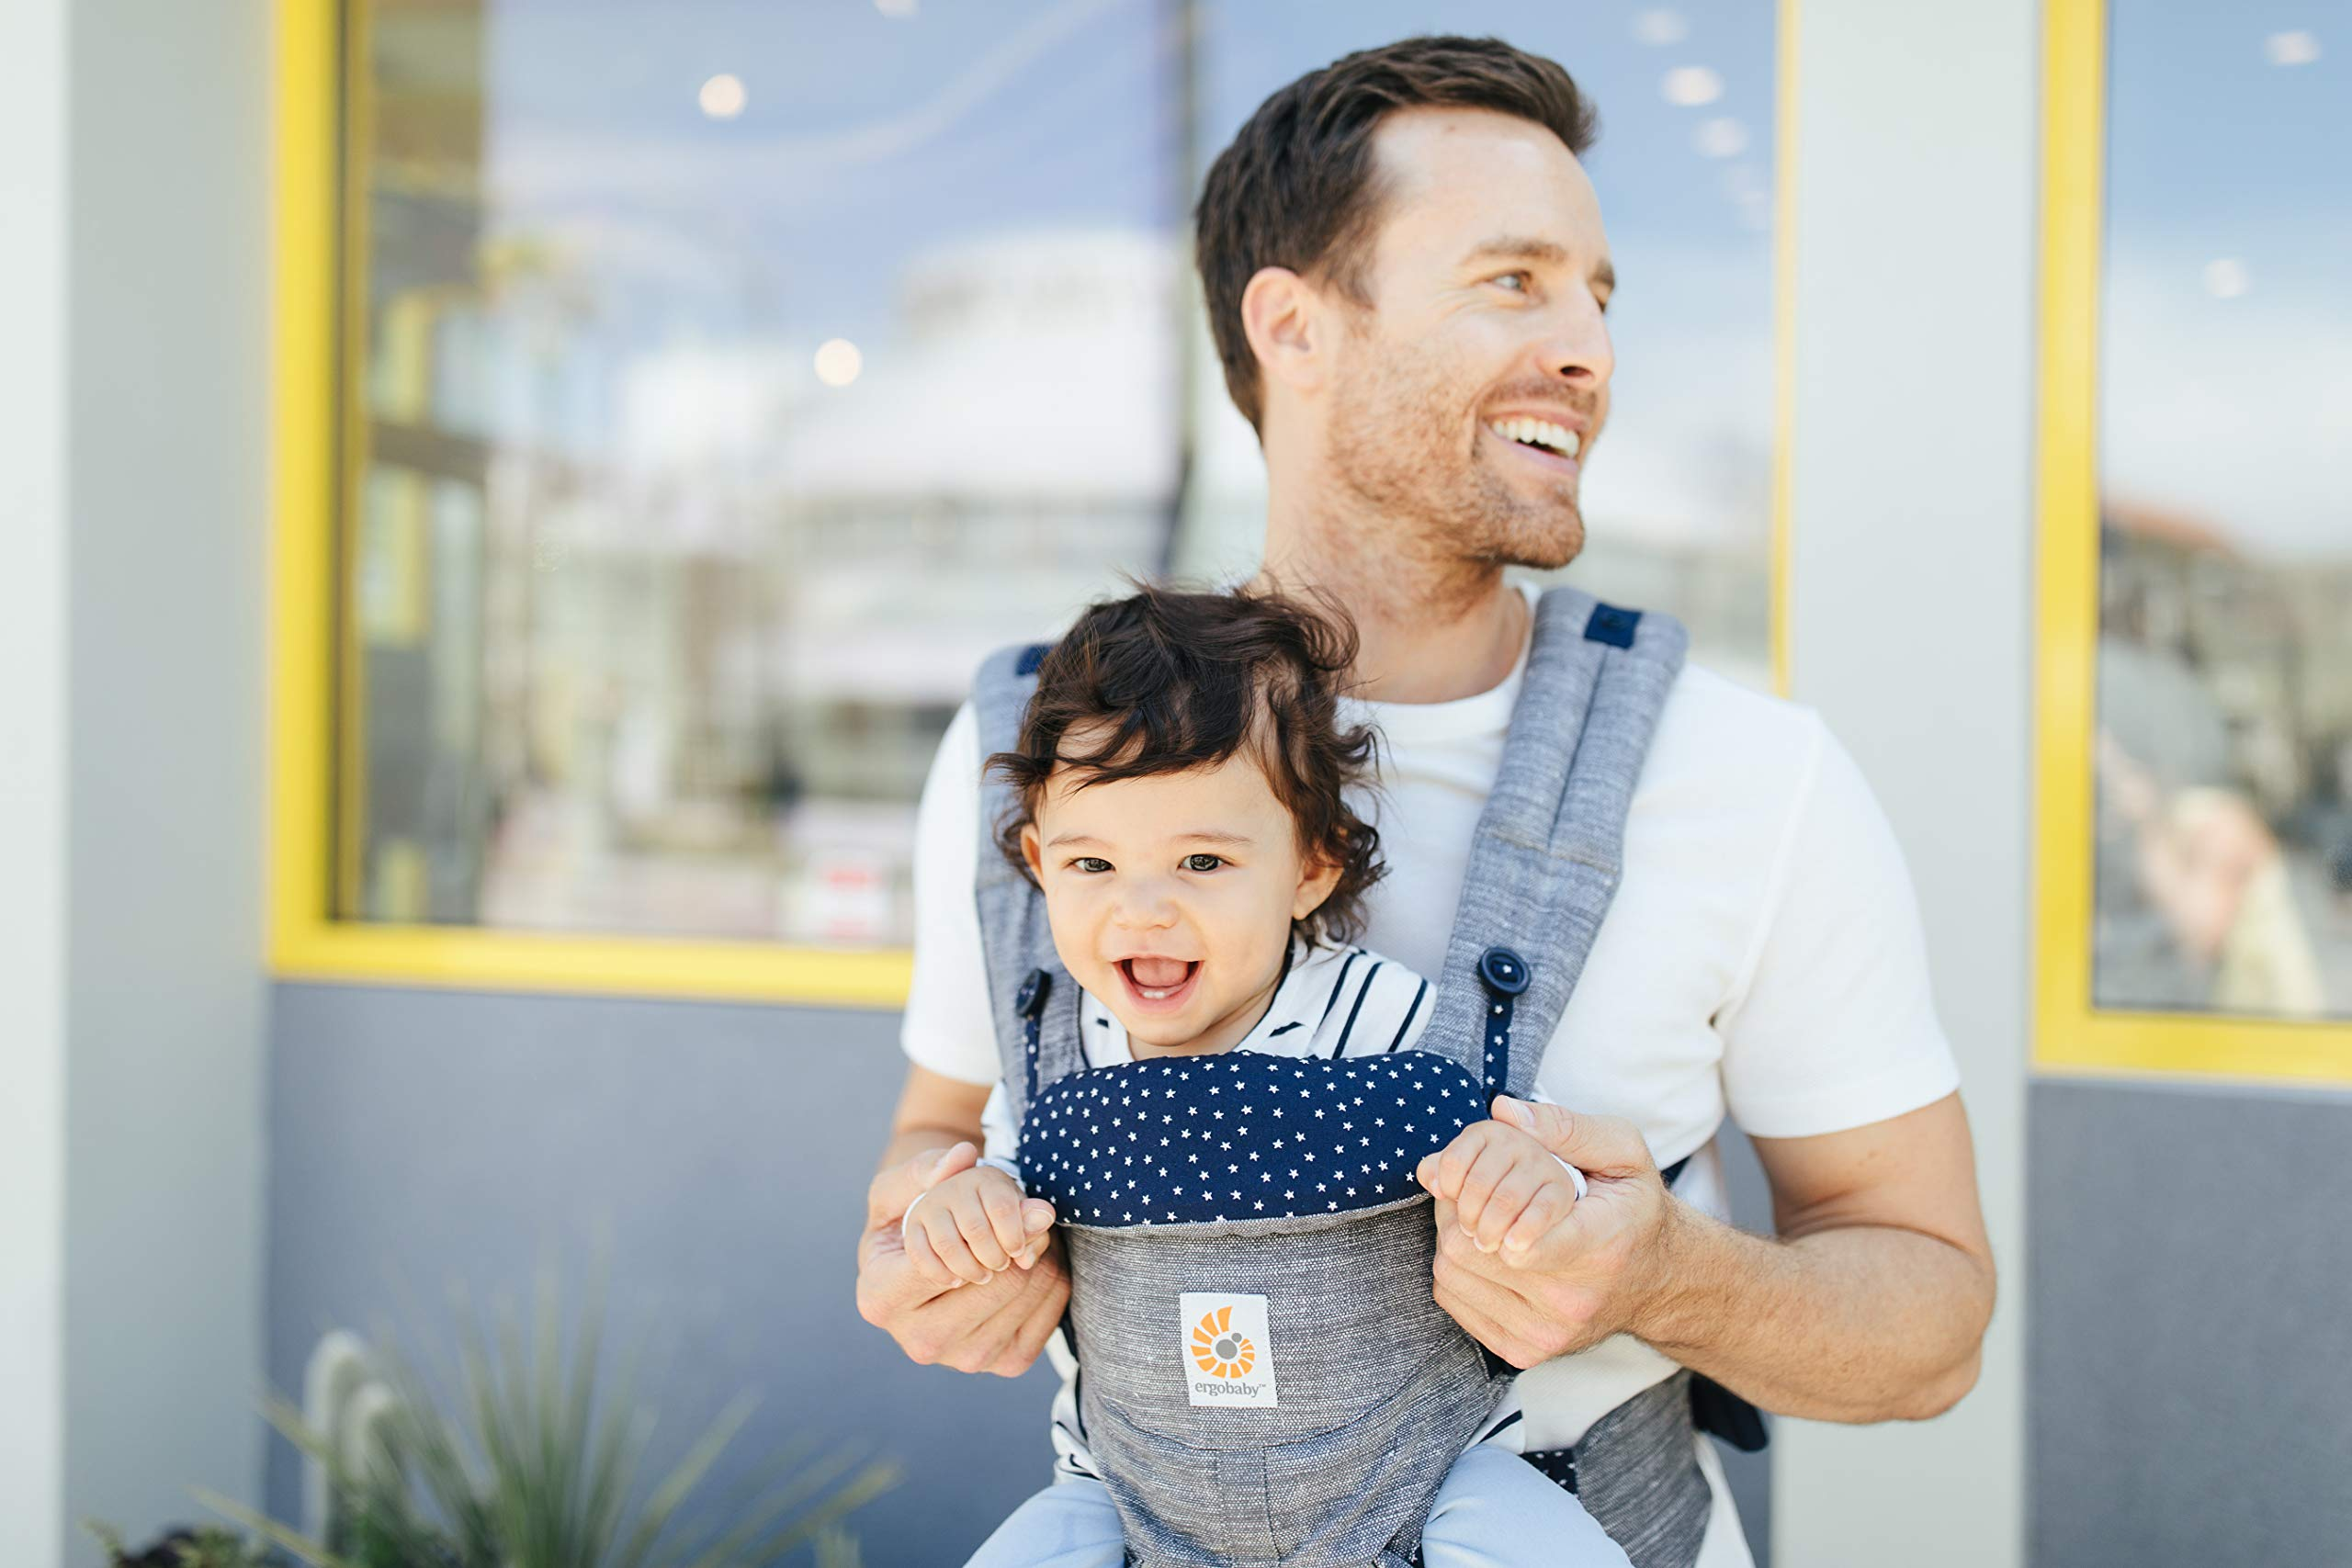 ERGObaby Baby Carrier for Newborn to Toddler, 4-Position Omni 360 Star Dust, Ergonomic Child Carrier Backpack Ergobaby Baby carrier with 4 ergonomic wearing positions: parent facing, on the back, on the hips and on the front facing outwards. Adapts to baby's growth: Infant baby carrier newborn to toddler (7-33 lbs./ 3.2 to 20 kg), no infant insert needed. Tuck-away baby hood for sun protection (UPF 50+) and privacy. NEW - Maximum comfort for parent: Longwear comfort with lumbar support waistbelt and extra cushioned shoulder straps. 5